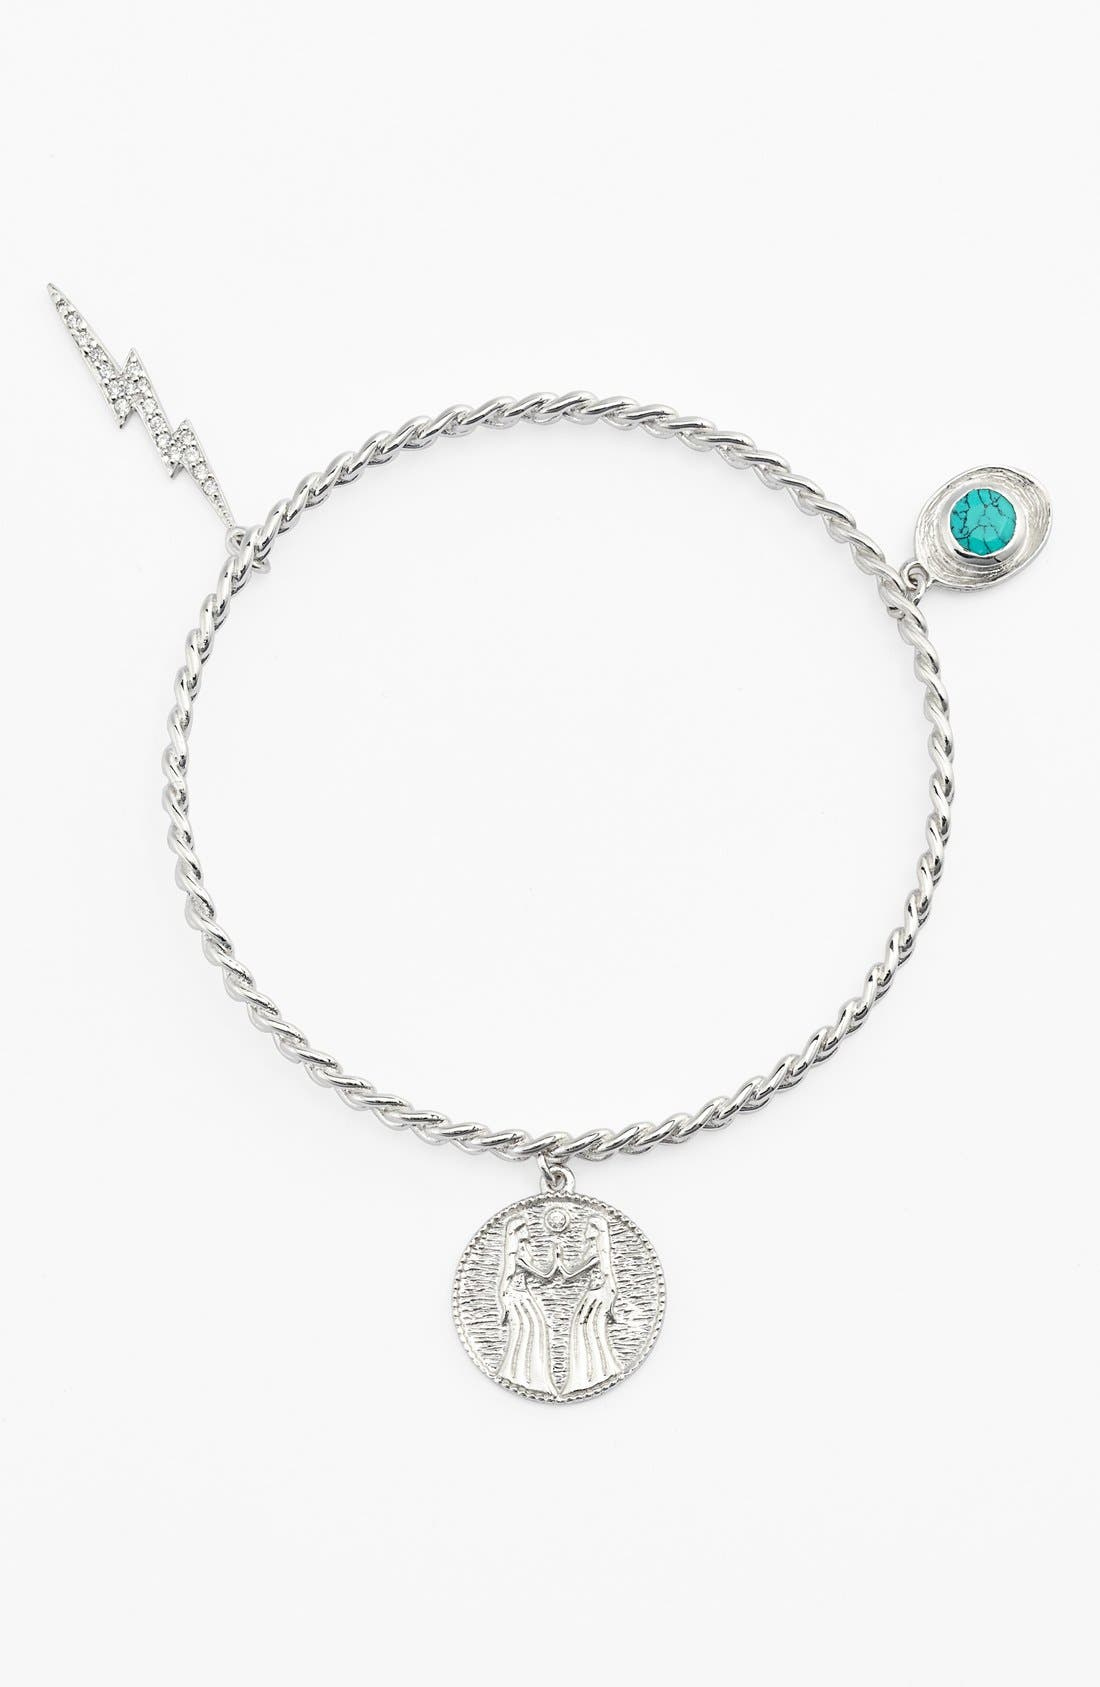 Alternate Image 1 Selected - Melinda Maria 'Goddess of Sisterhood' Charm Bangle